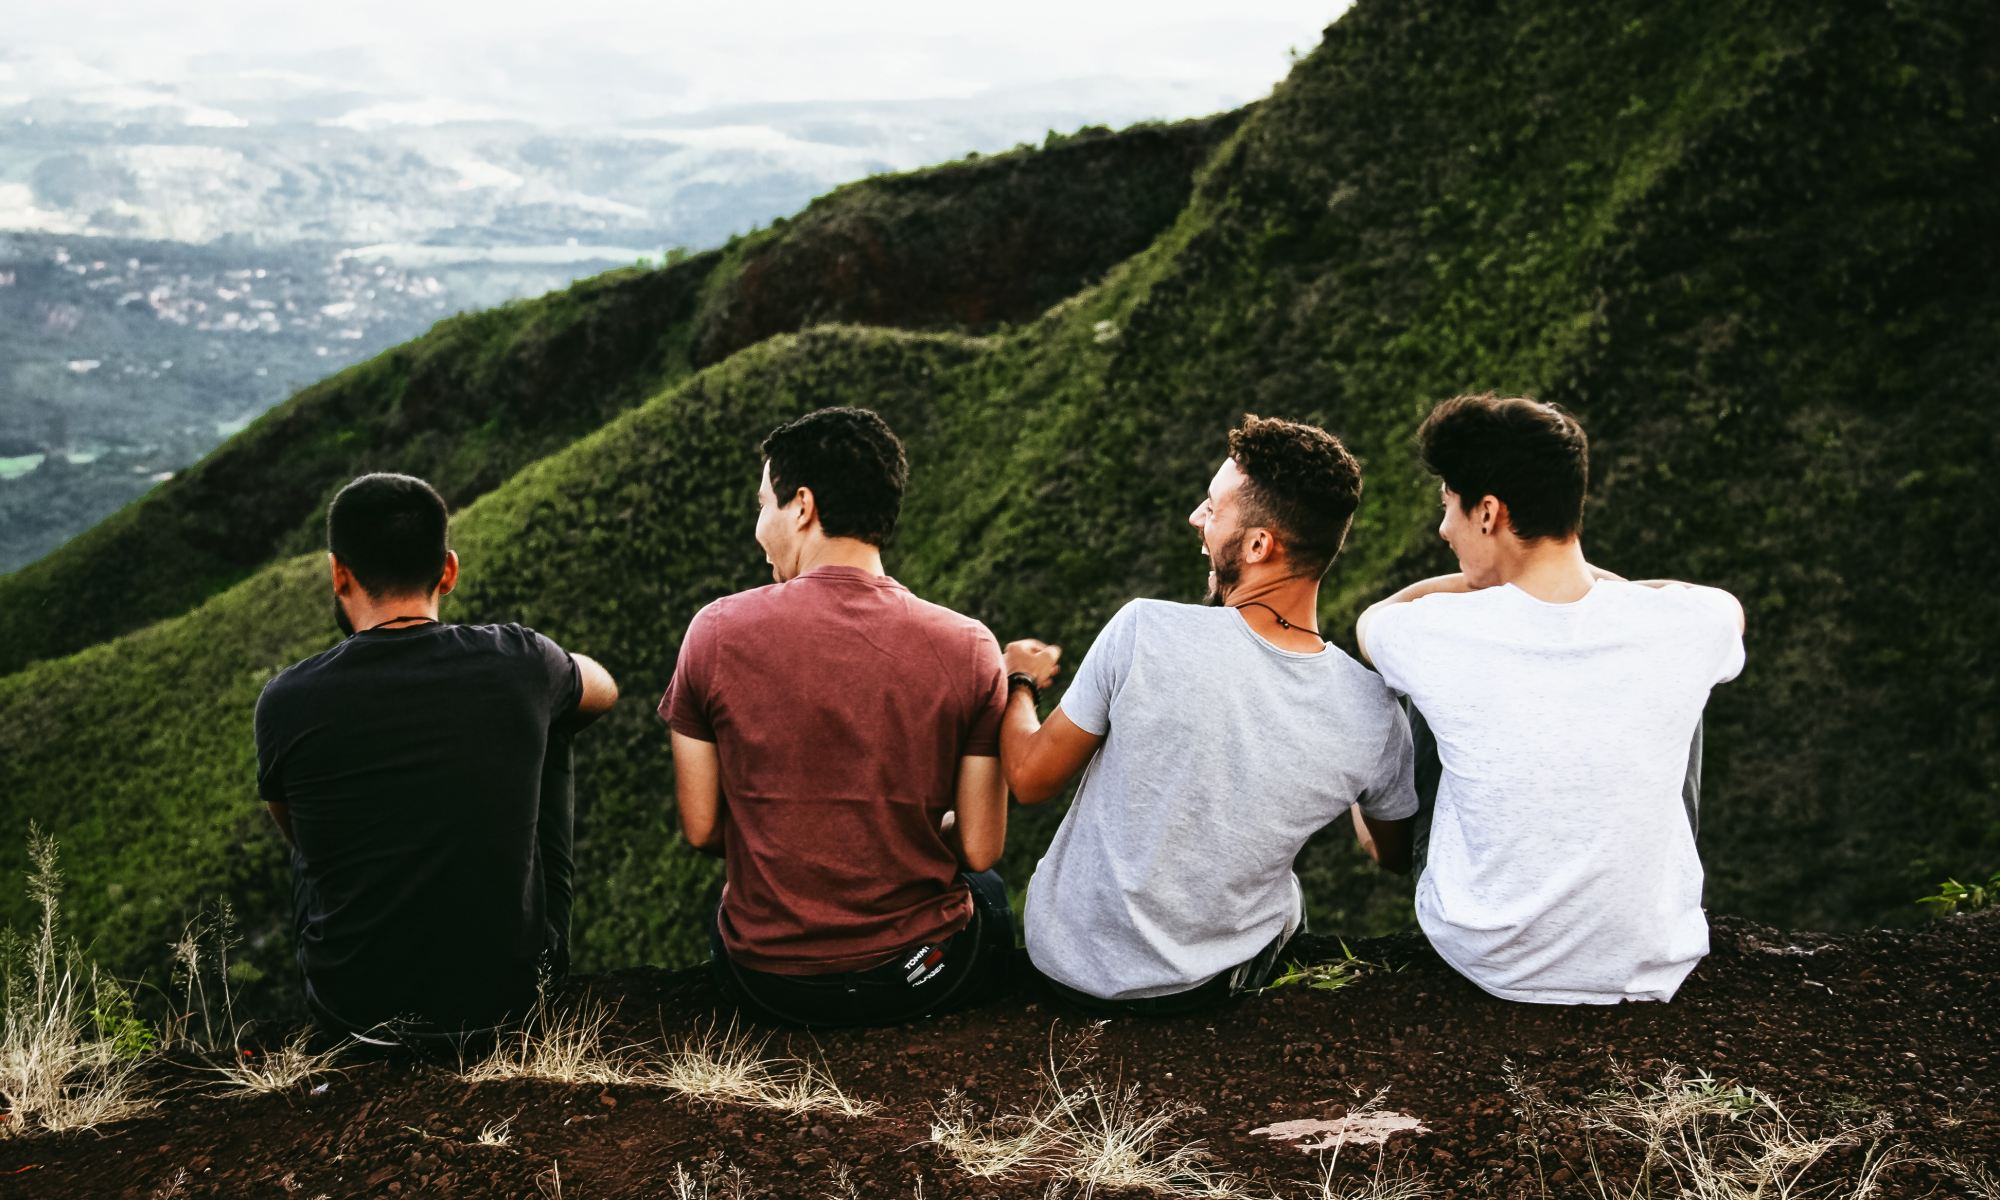 Four teenage boys sitting on mountain trail